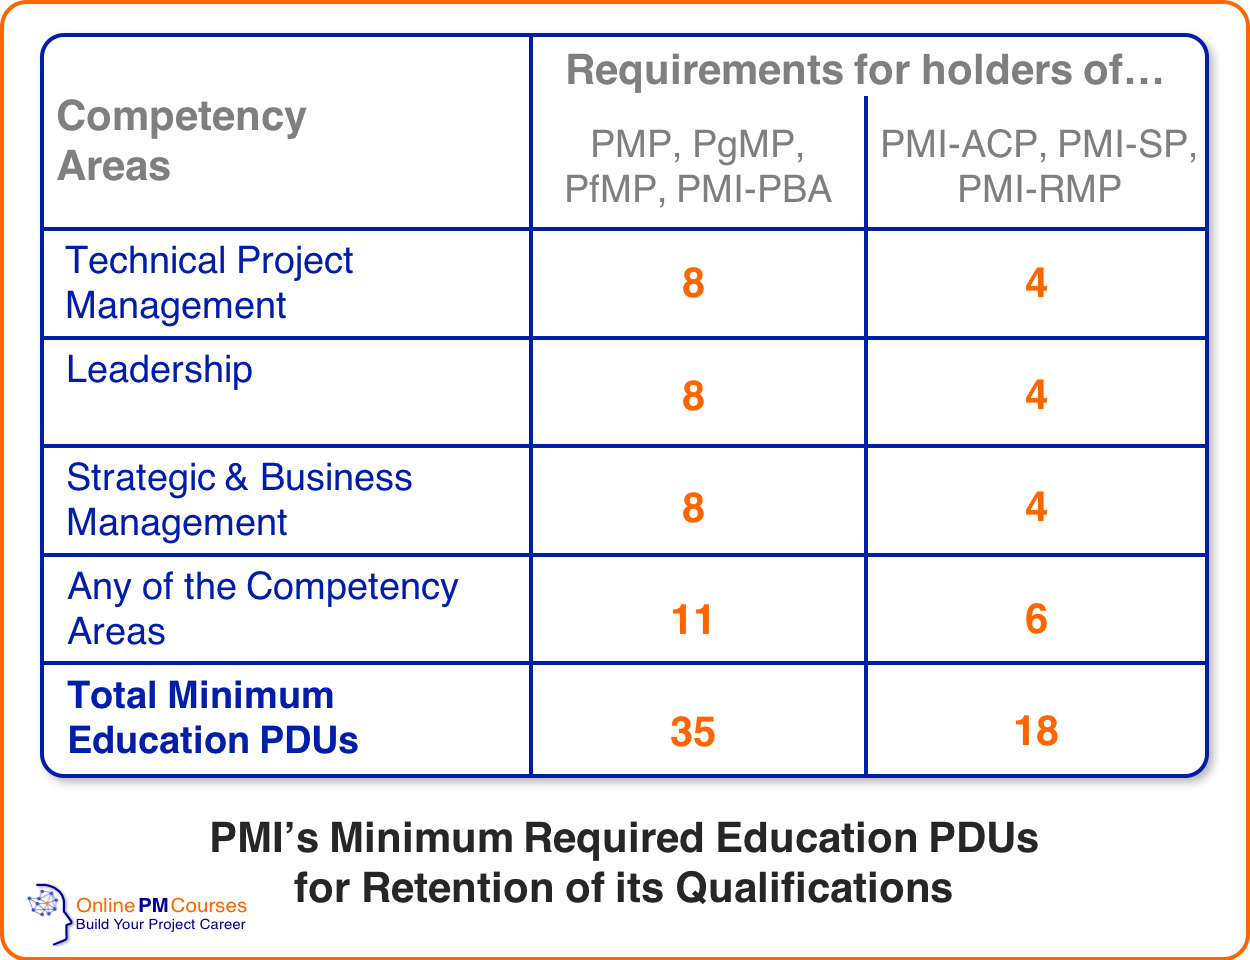 Talent Triangle - Minimum Education PDU Requirements